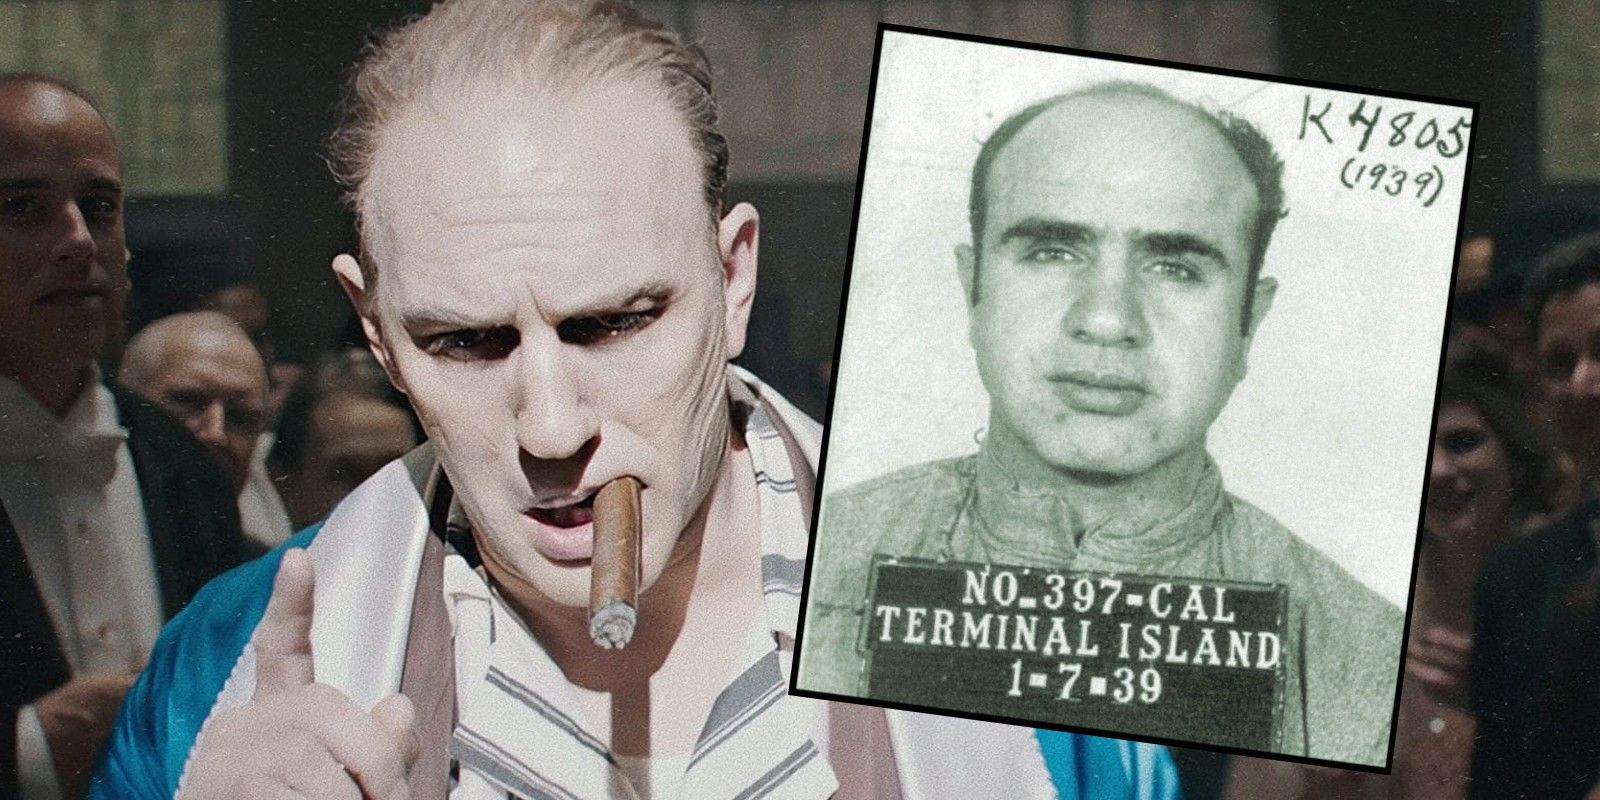 What Al Capone & Other Characters Looked Like In Real Life